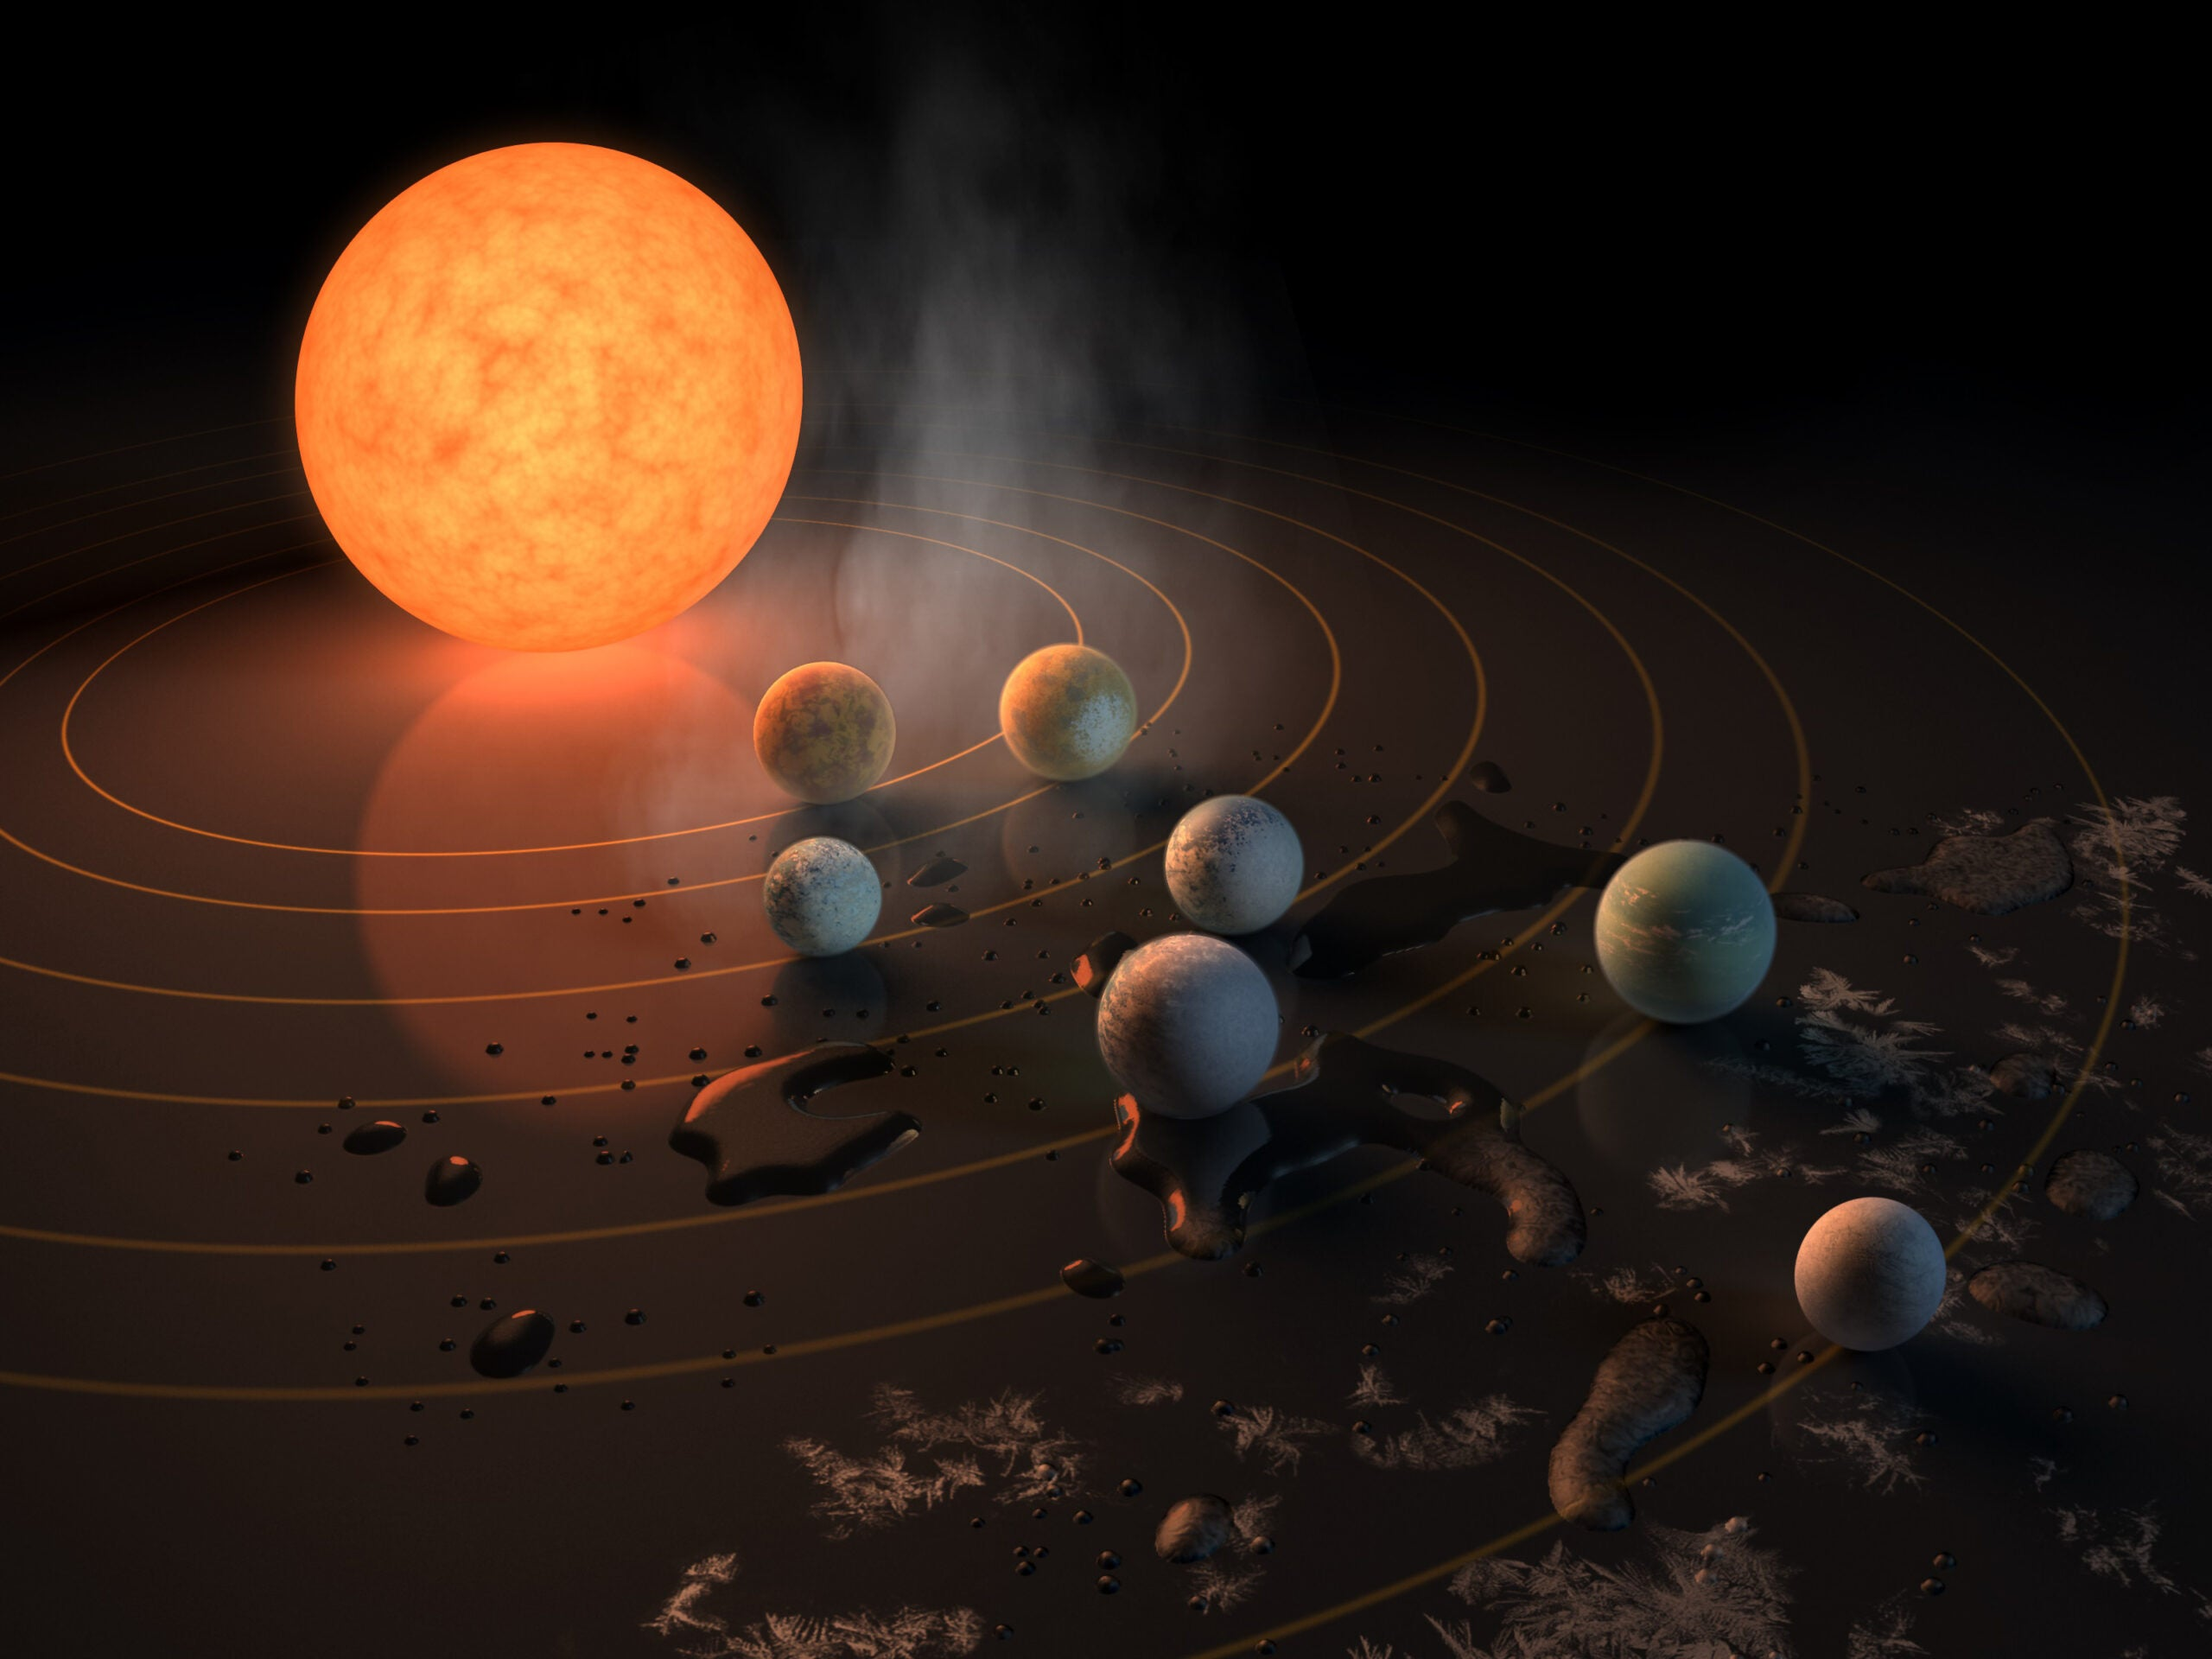 7 planets in the trappist-1 solar system